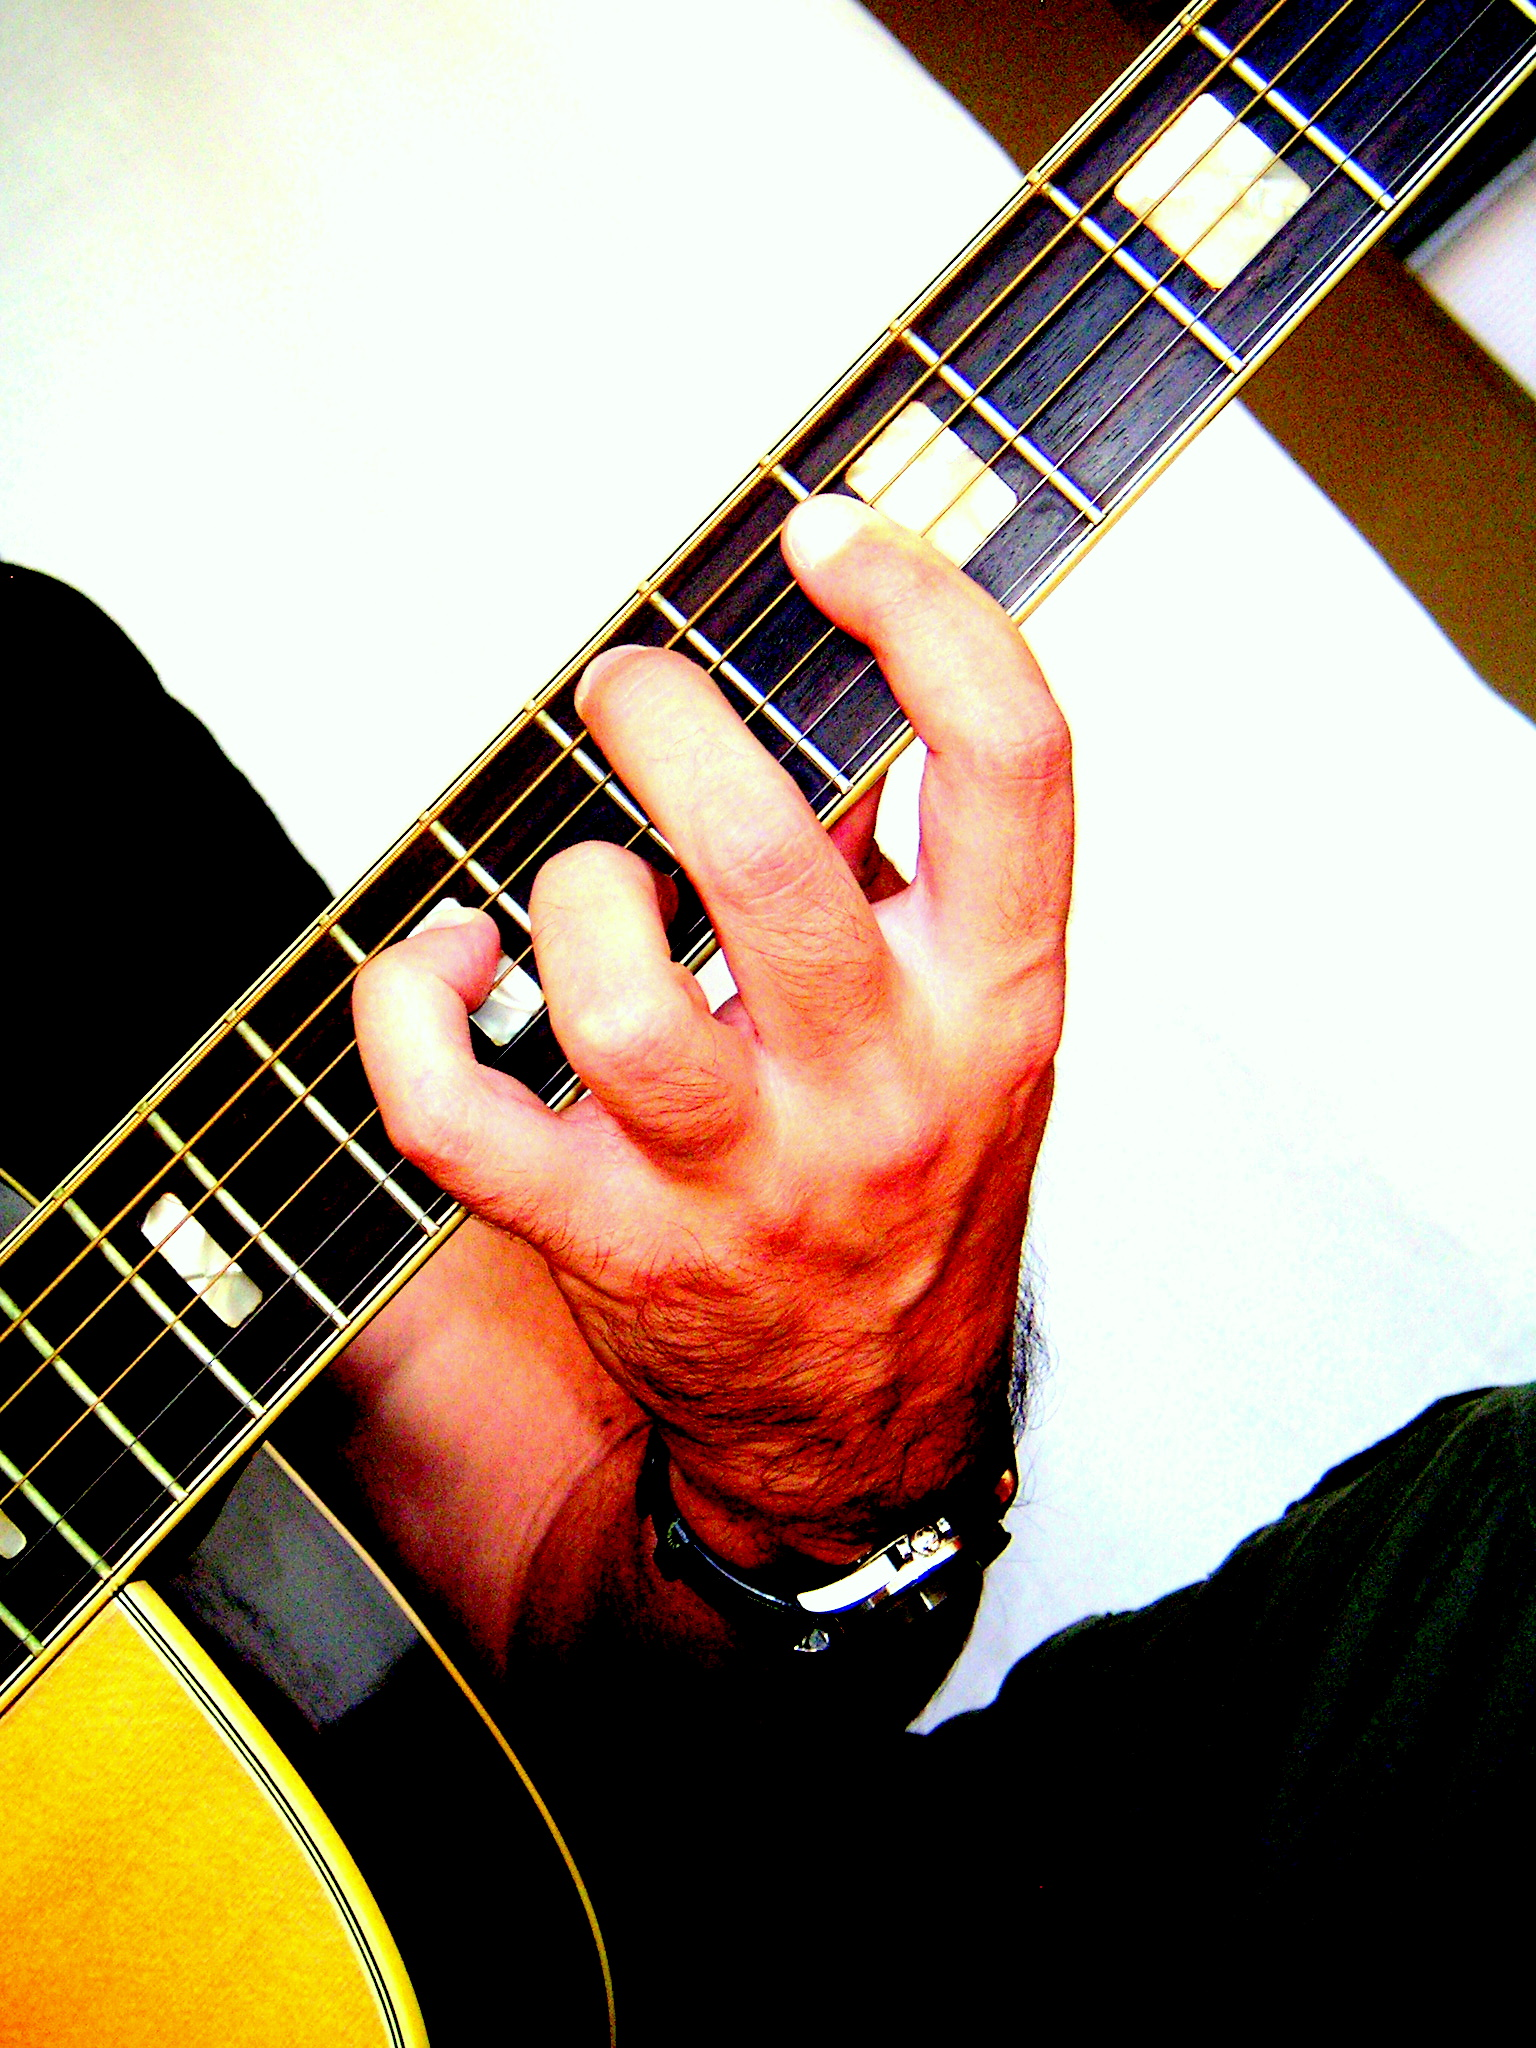 The Master Plan: Reach your full potential as a Guitarist/Musician